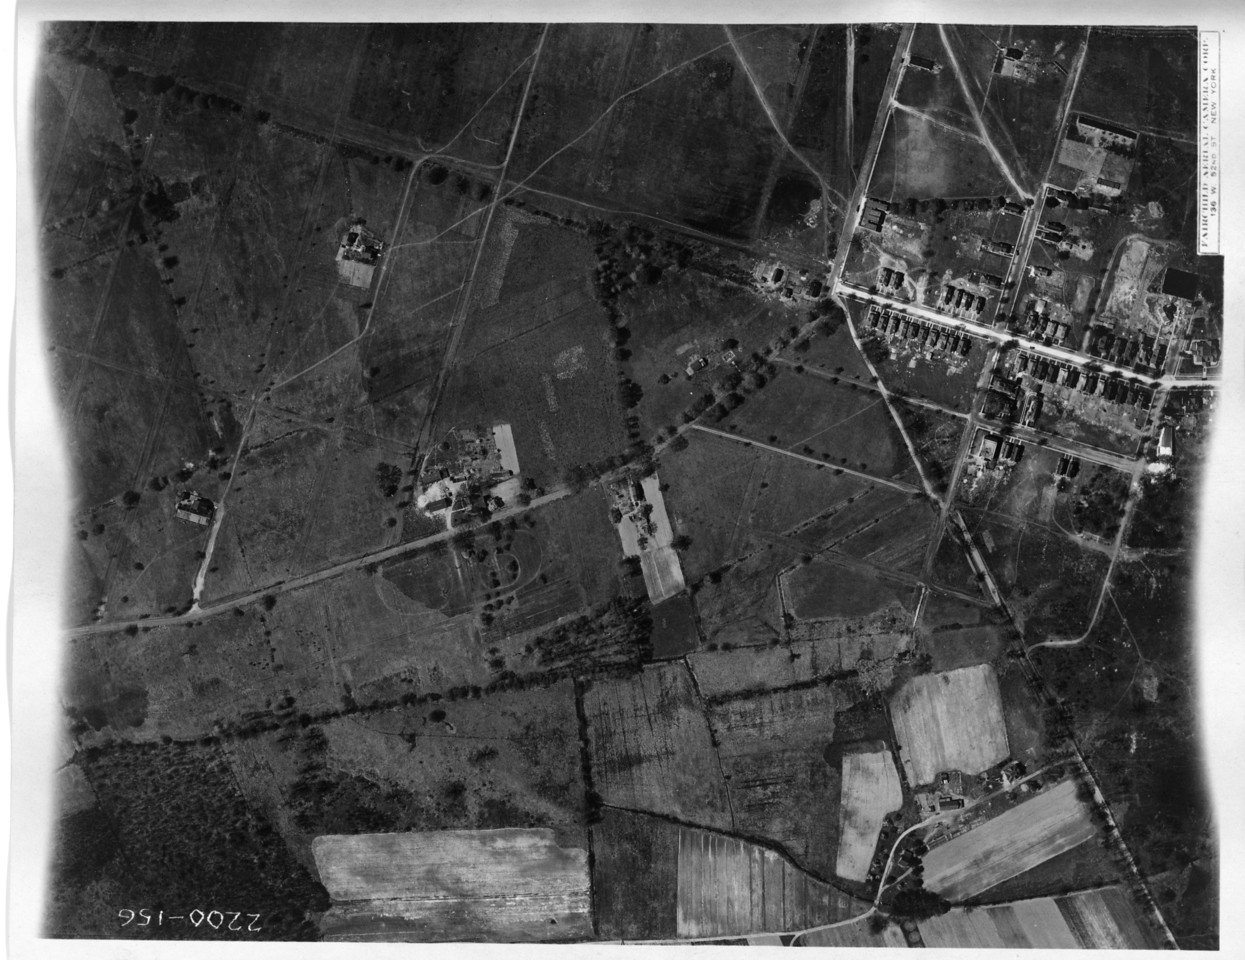 1923 Aerial of Kenilworth showing a very wide 21st St. and Newark Ave. which was an early development of row houses, most of which still stand today.